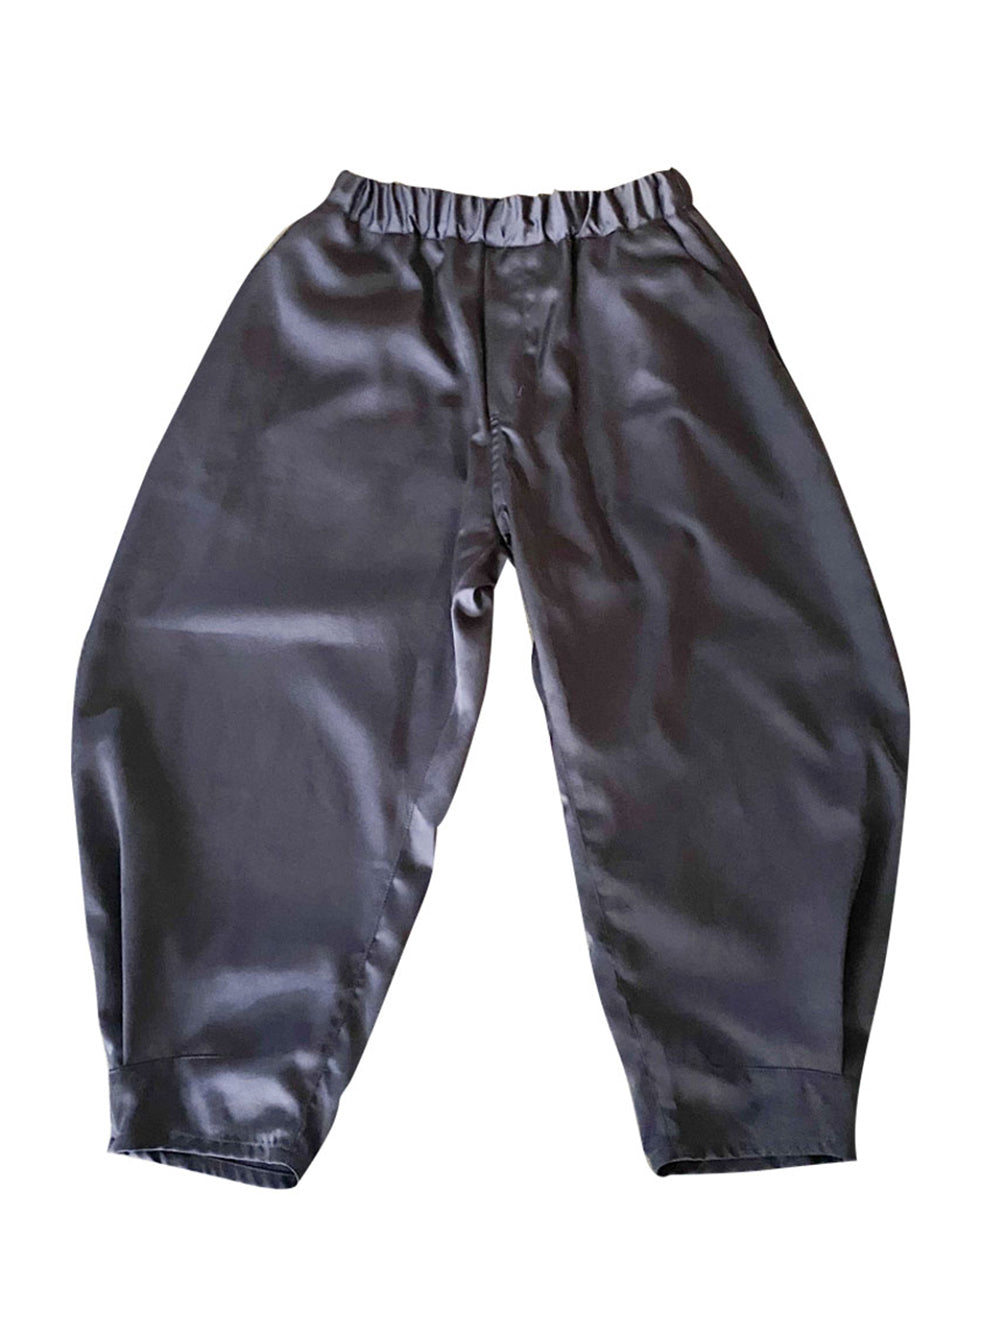 Blue/Grey Nunuforme Balloon Pants